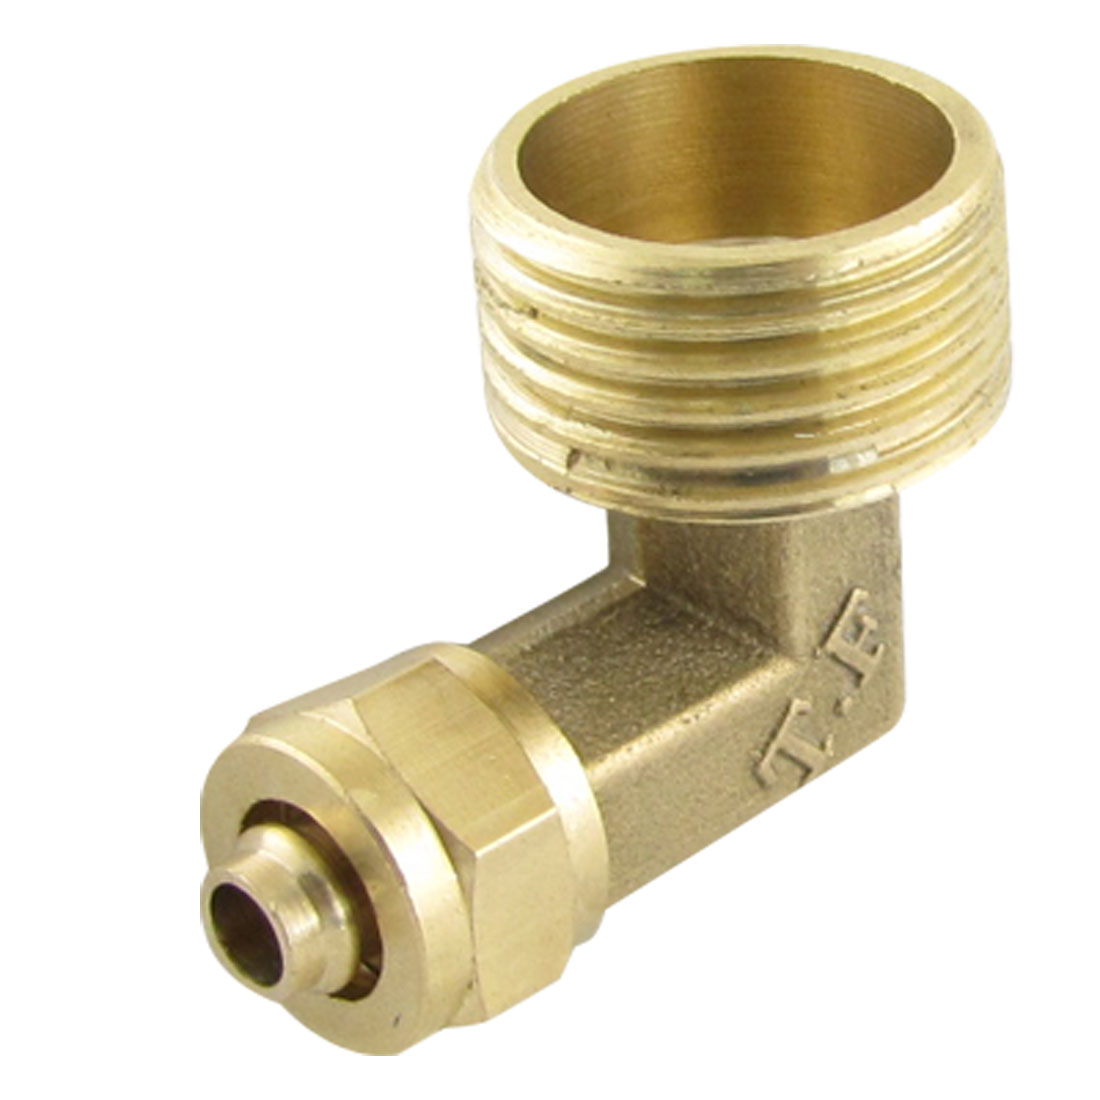 Brass 5.5 x 8mm Pneumatic Pipe Fitting Quick Coupler Elbow Connector